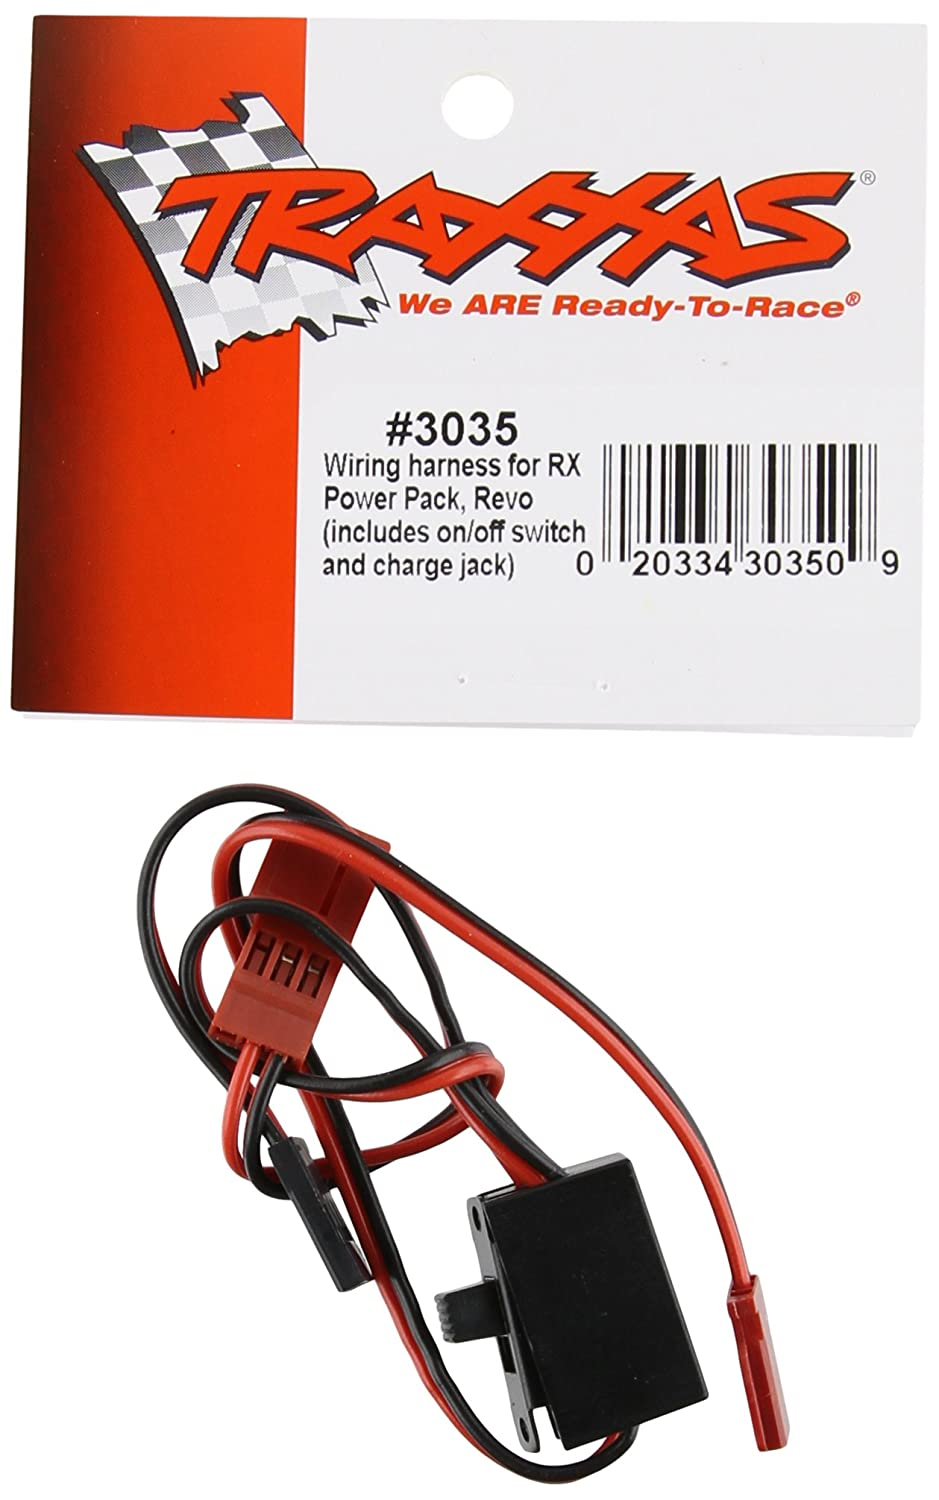 71uhbQCErNL._SL1500_ amazon com traxxas 3035 wiring harness for rx power pack, revo traxxas wiring harness at readyjetset.co